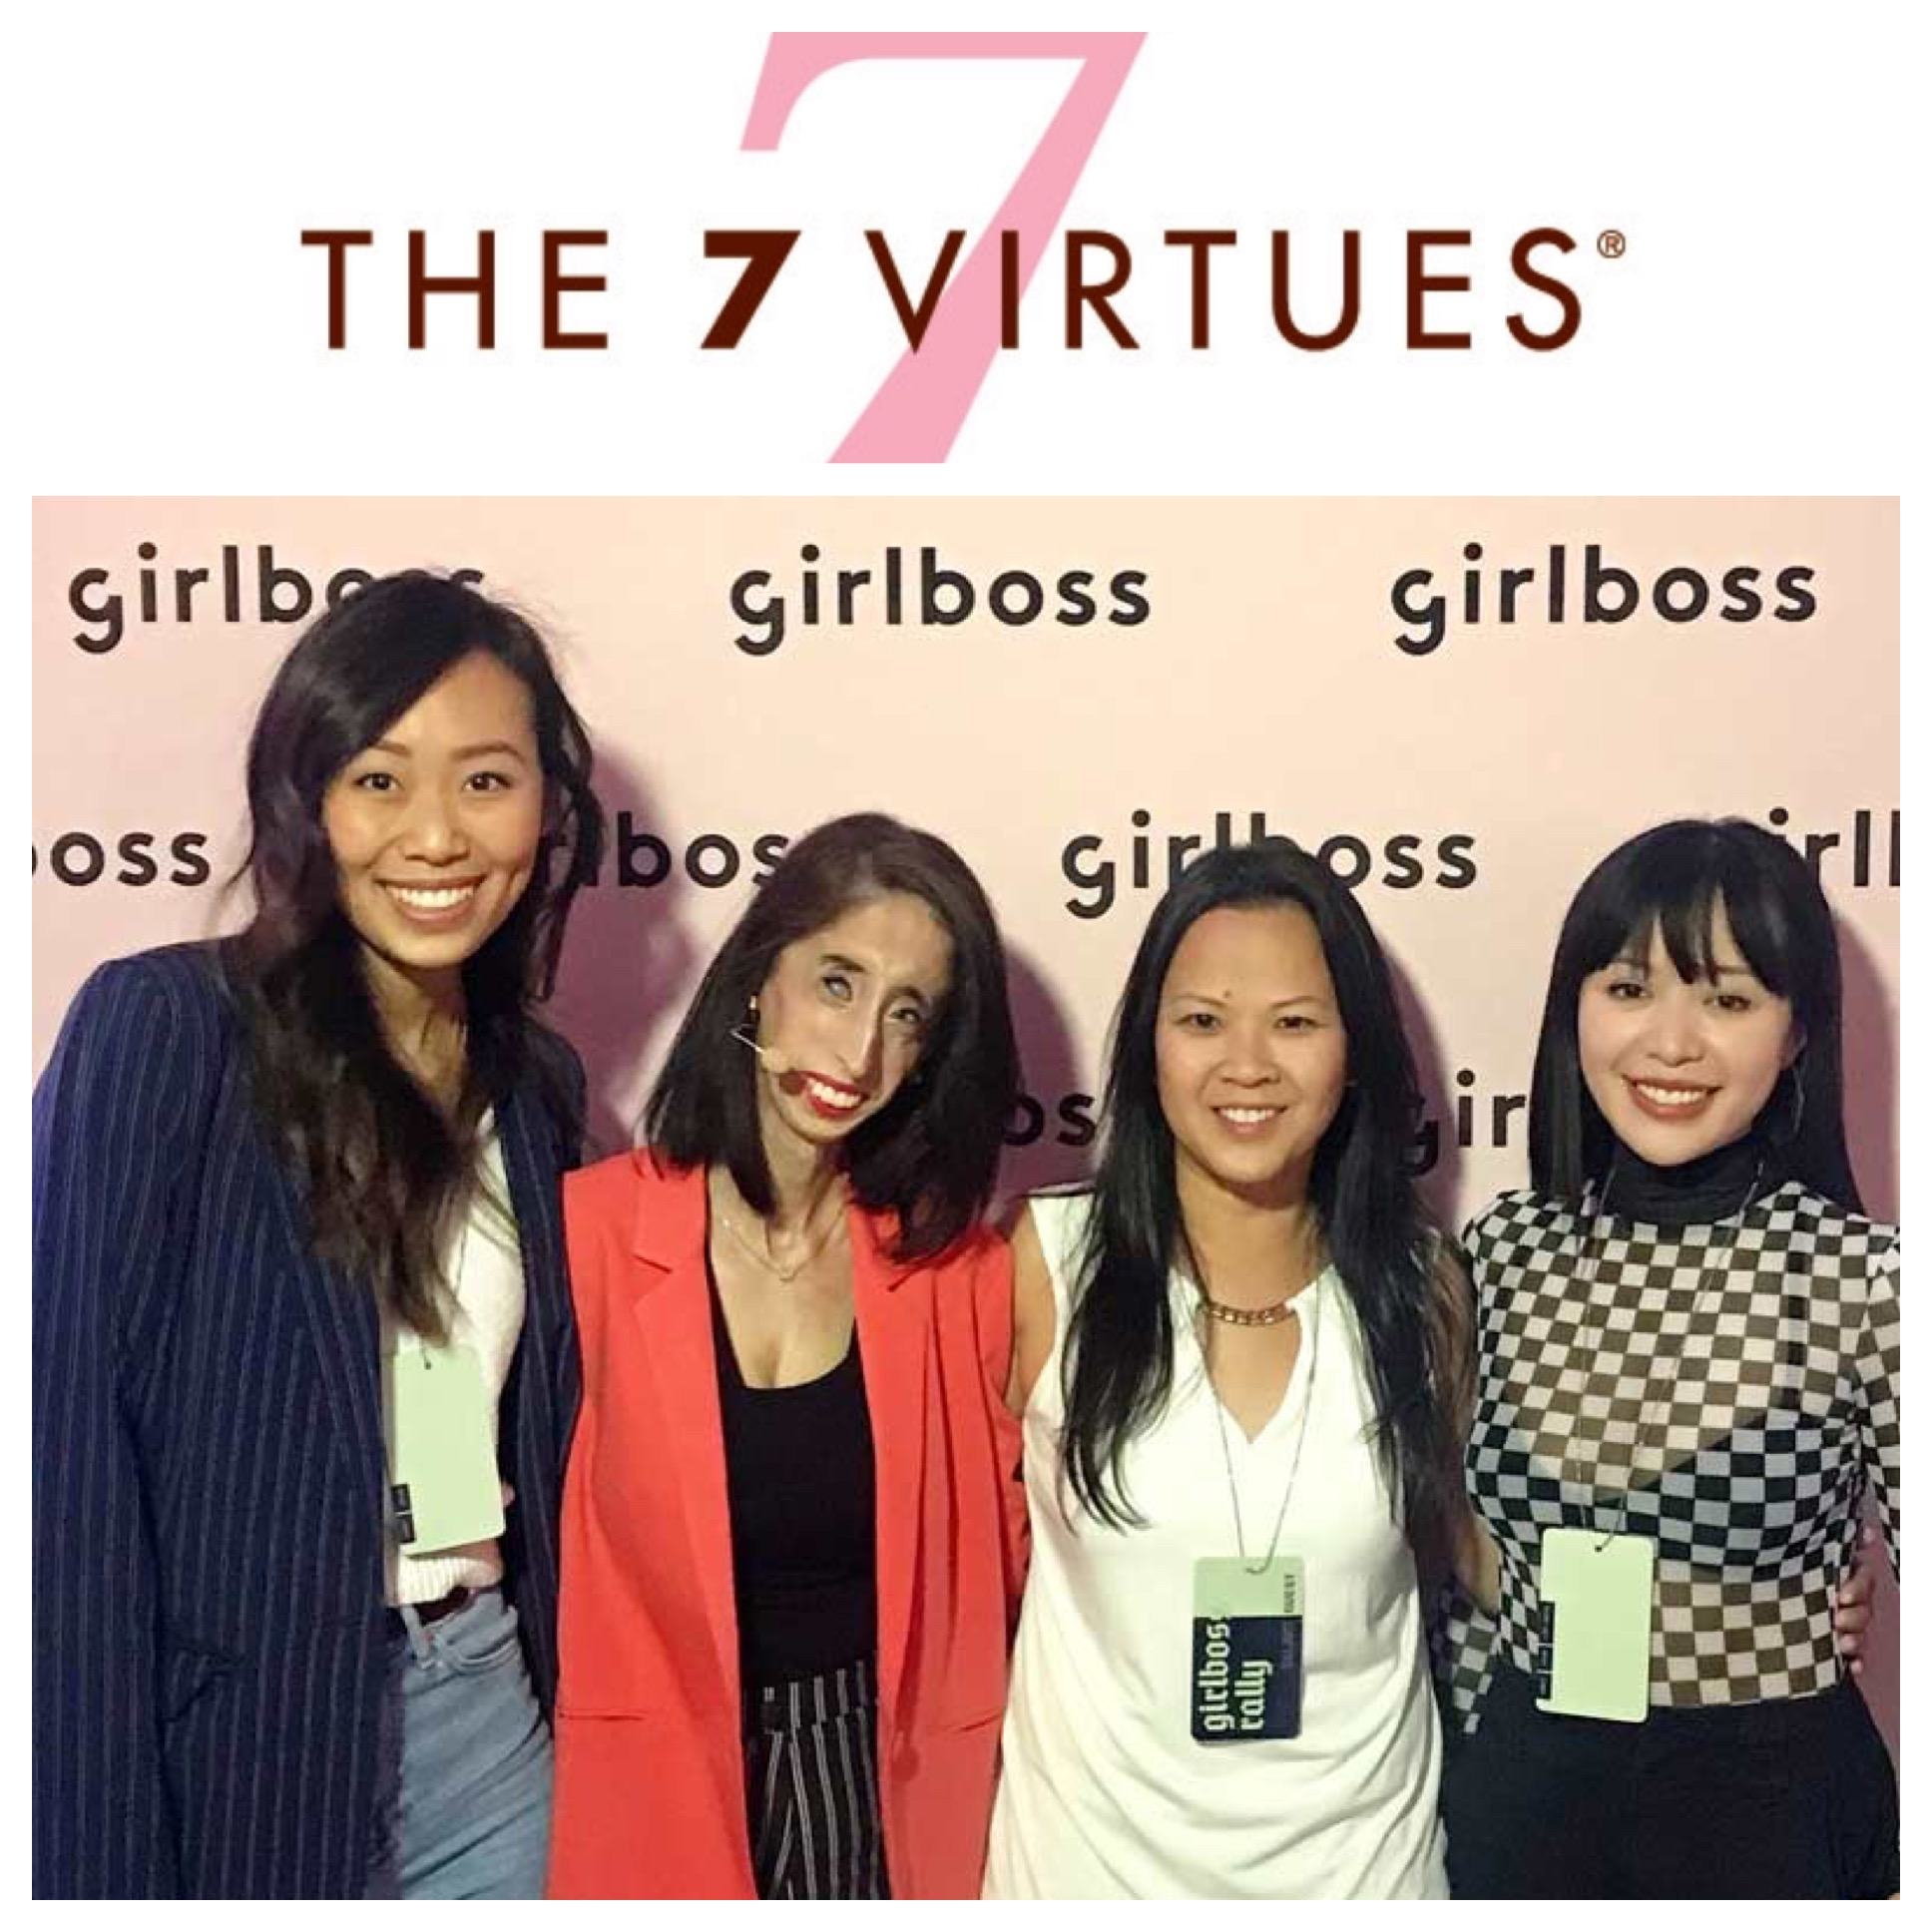 """- (7V Magazine, June 15, 2018)7V Role Models Feature Profile: Ngoc Nguyen7V magazine is profiling Ngoc Nguyen who is a Social Good Strategist. She does more to end bullying through the power of film than anyone I know. Ngoc produced & led PR for """"A Brave Heart: The Lizzie Velasquez Story,"""" the award-winning doc about Lizzie's journey from bullying victim turned bullying activist. (Full Article.)"""